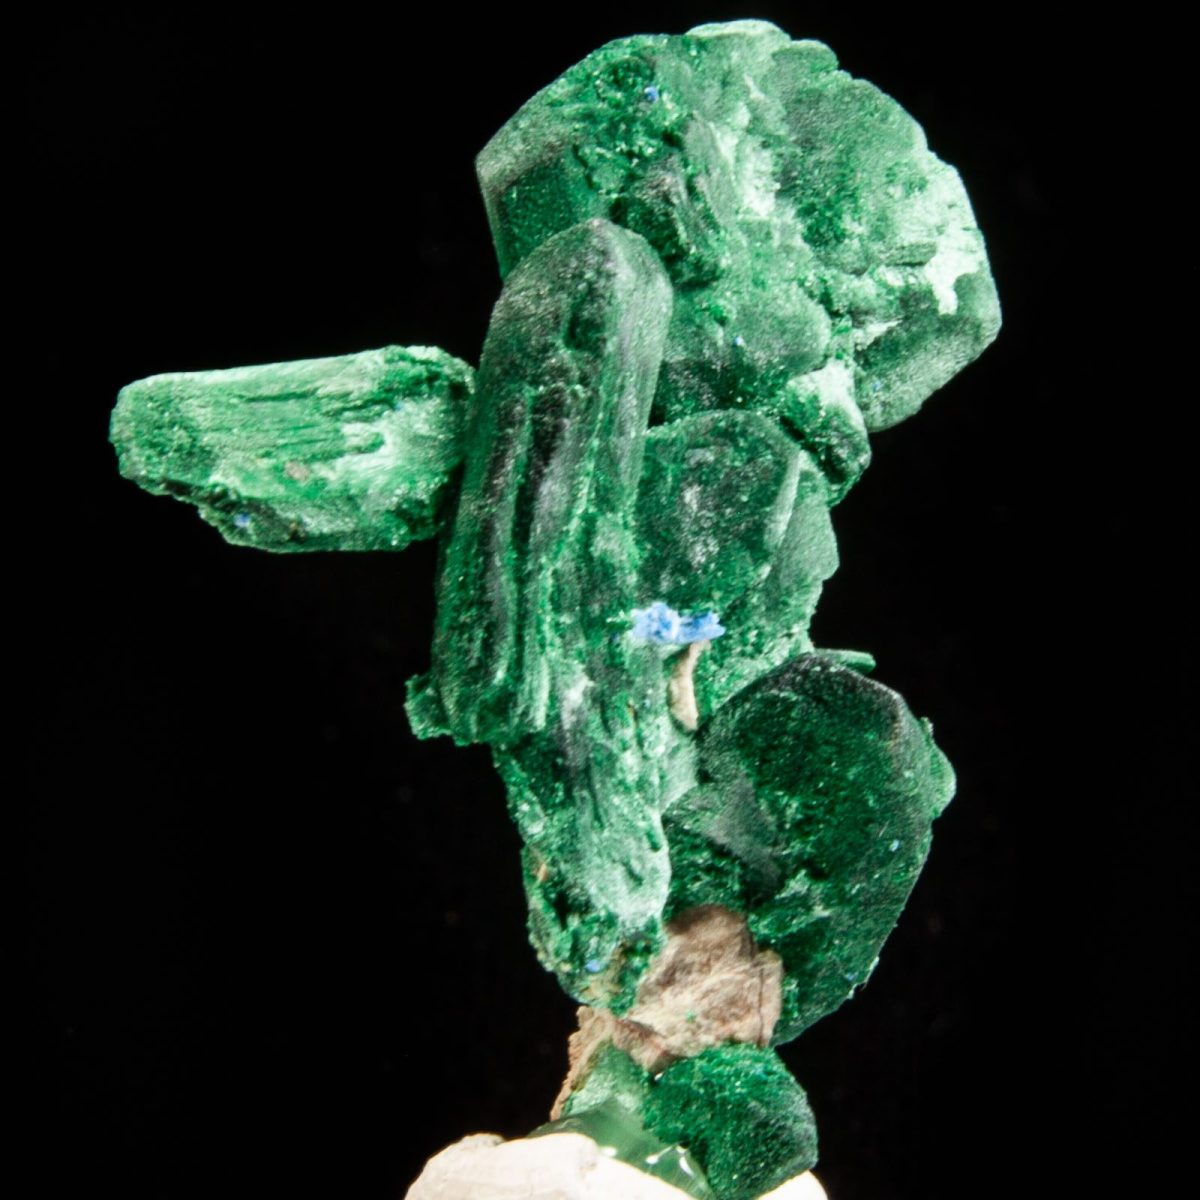 Malachite ps. Azurite